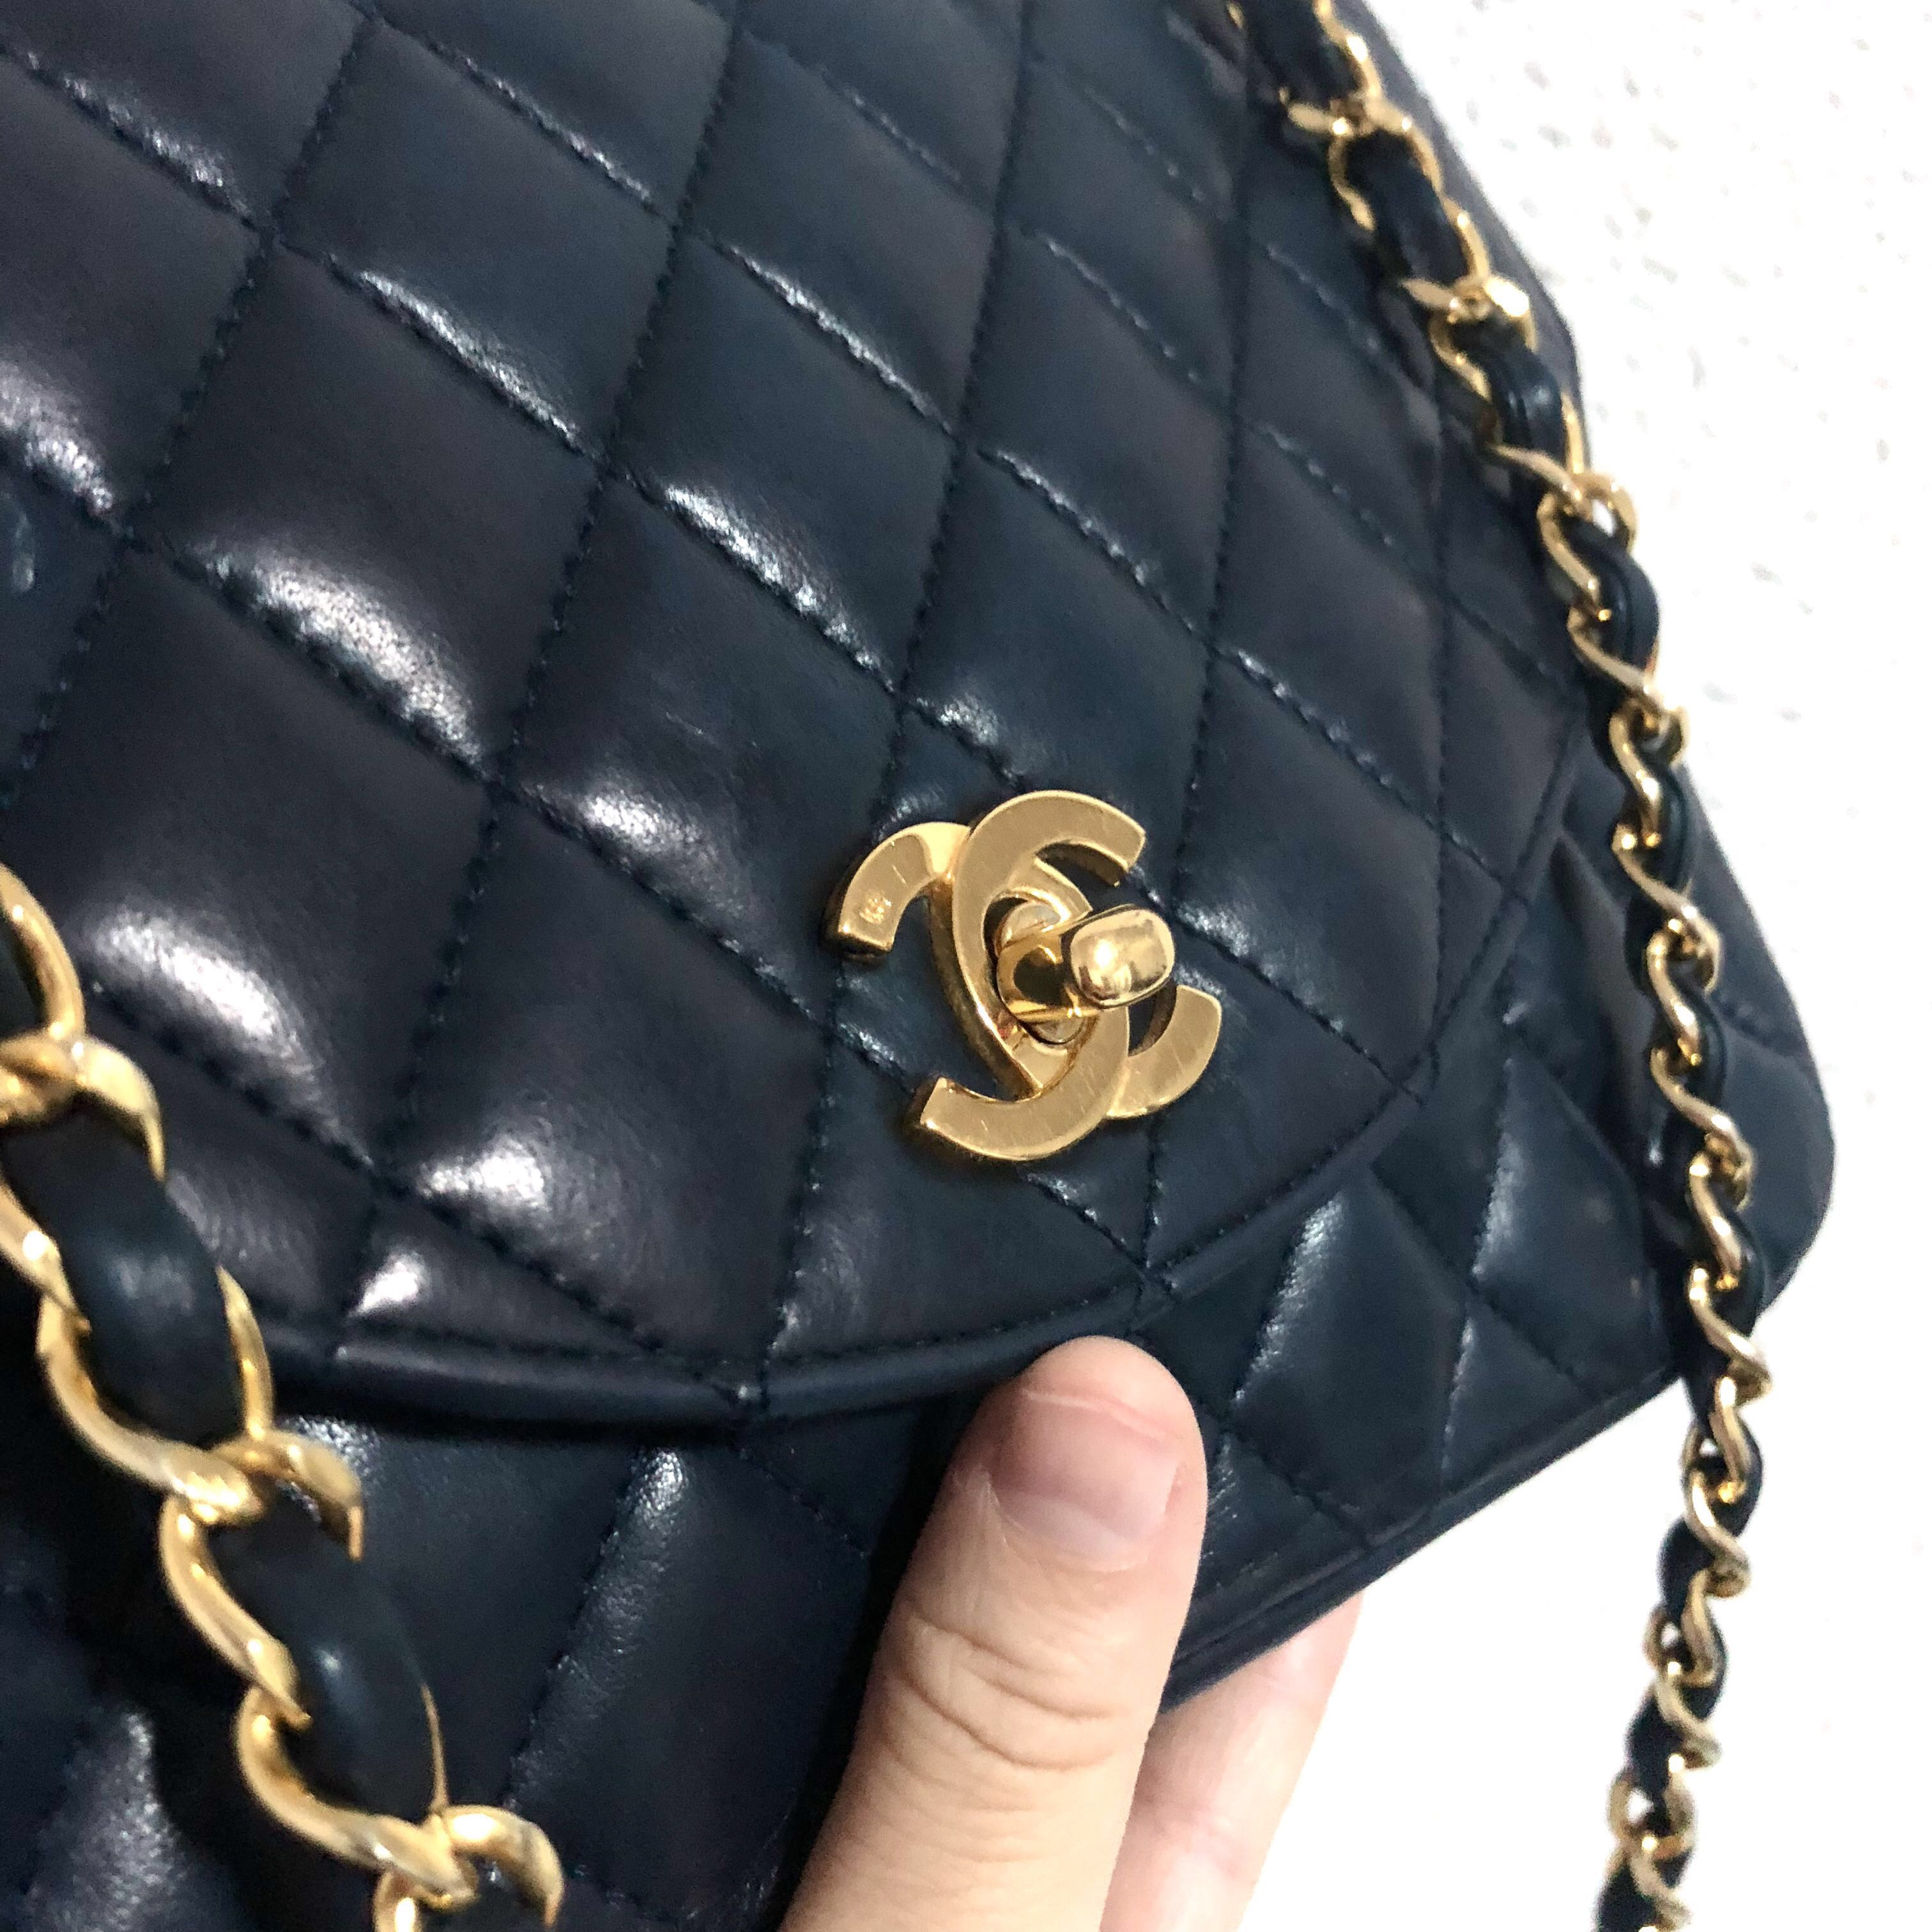 5bc5ec5efafe06 Authentic Chanel Navy Blue Puffy Lambskin Quilts Crossbody Bag ...